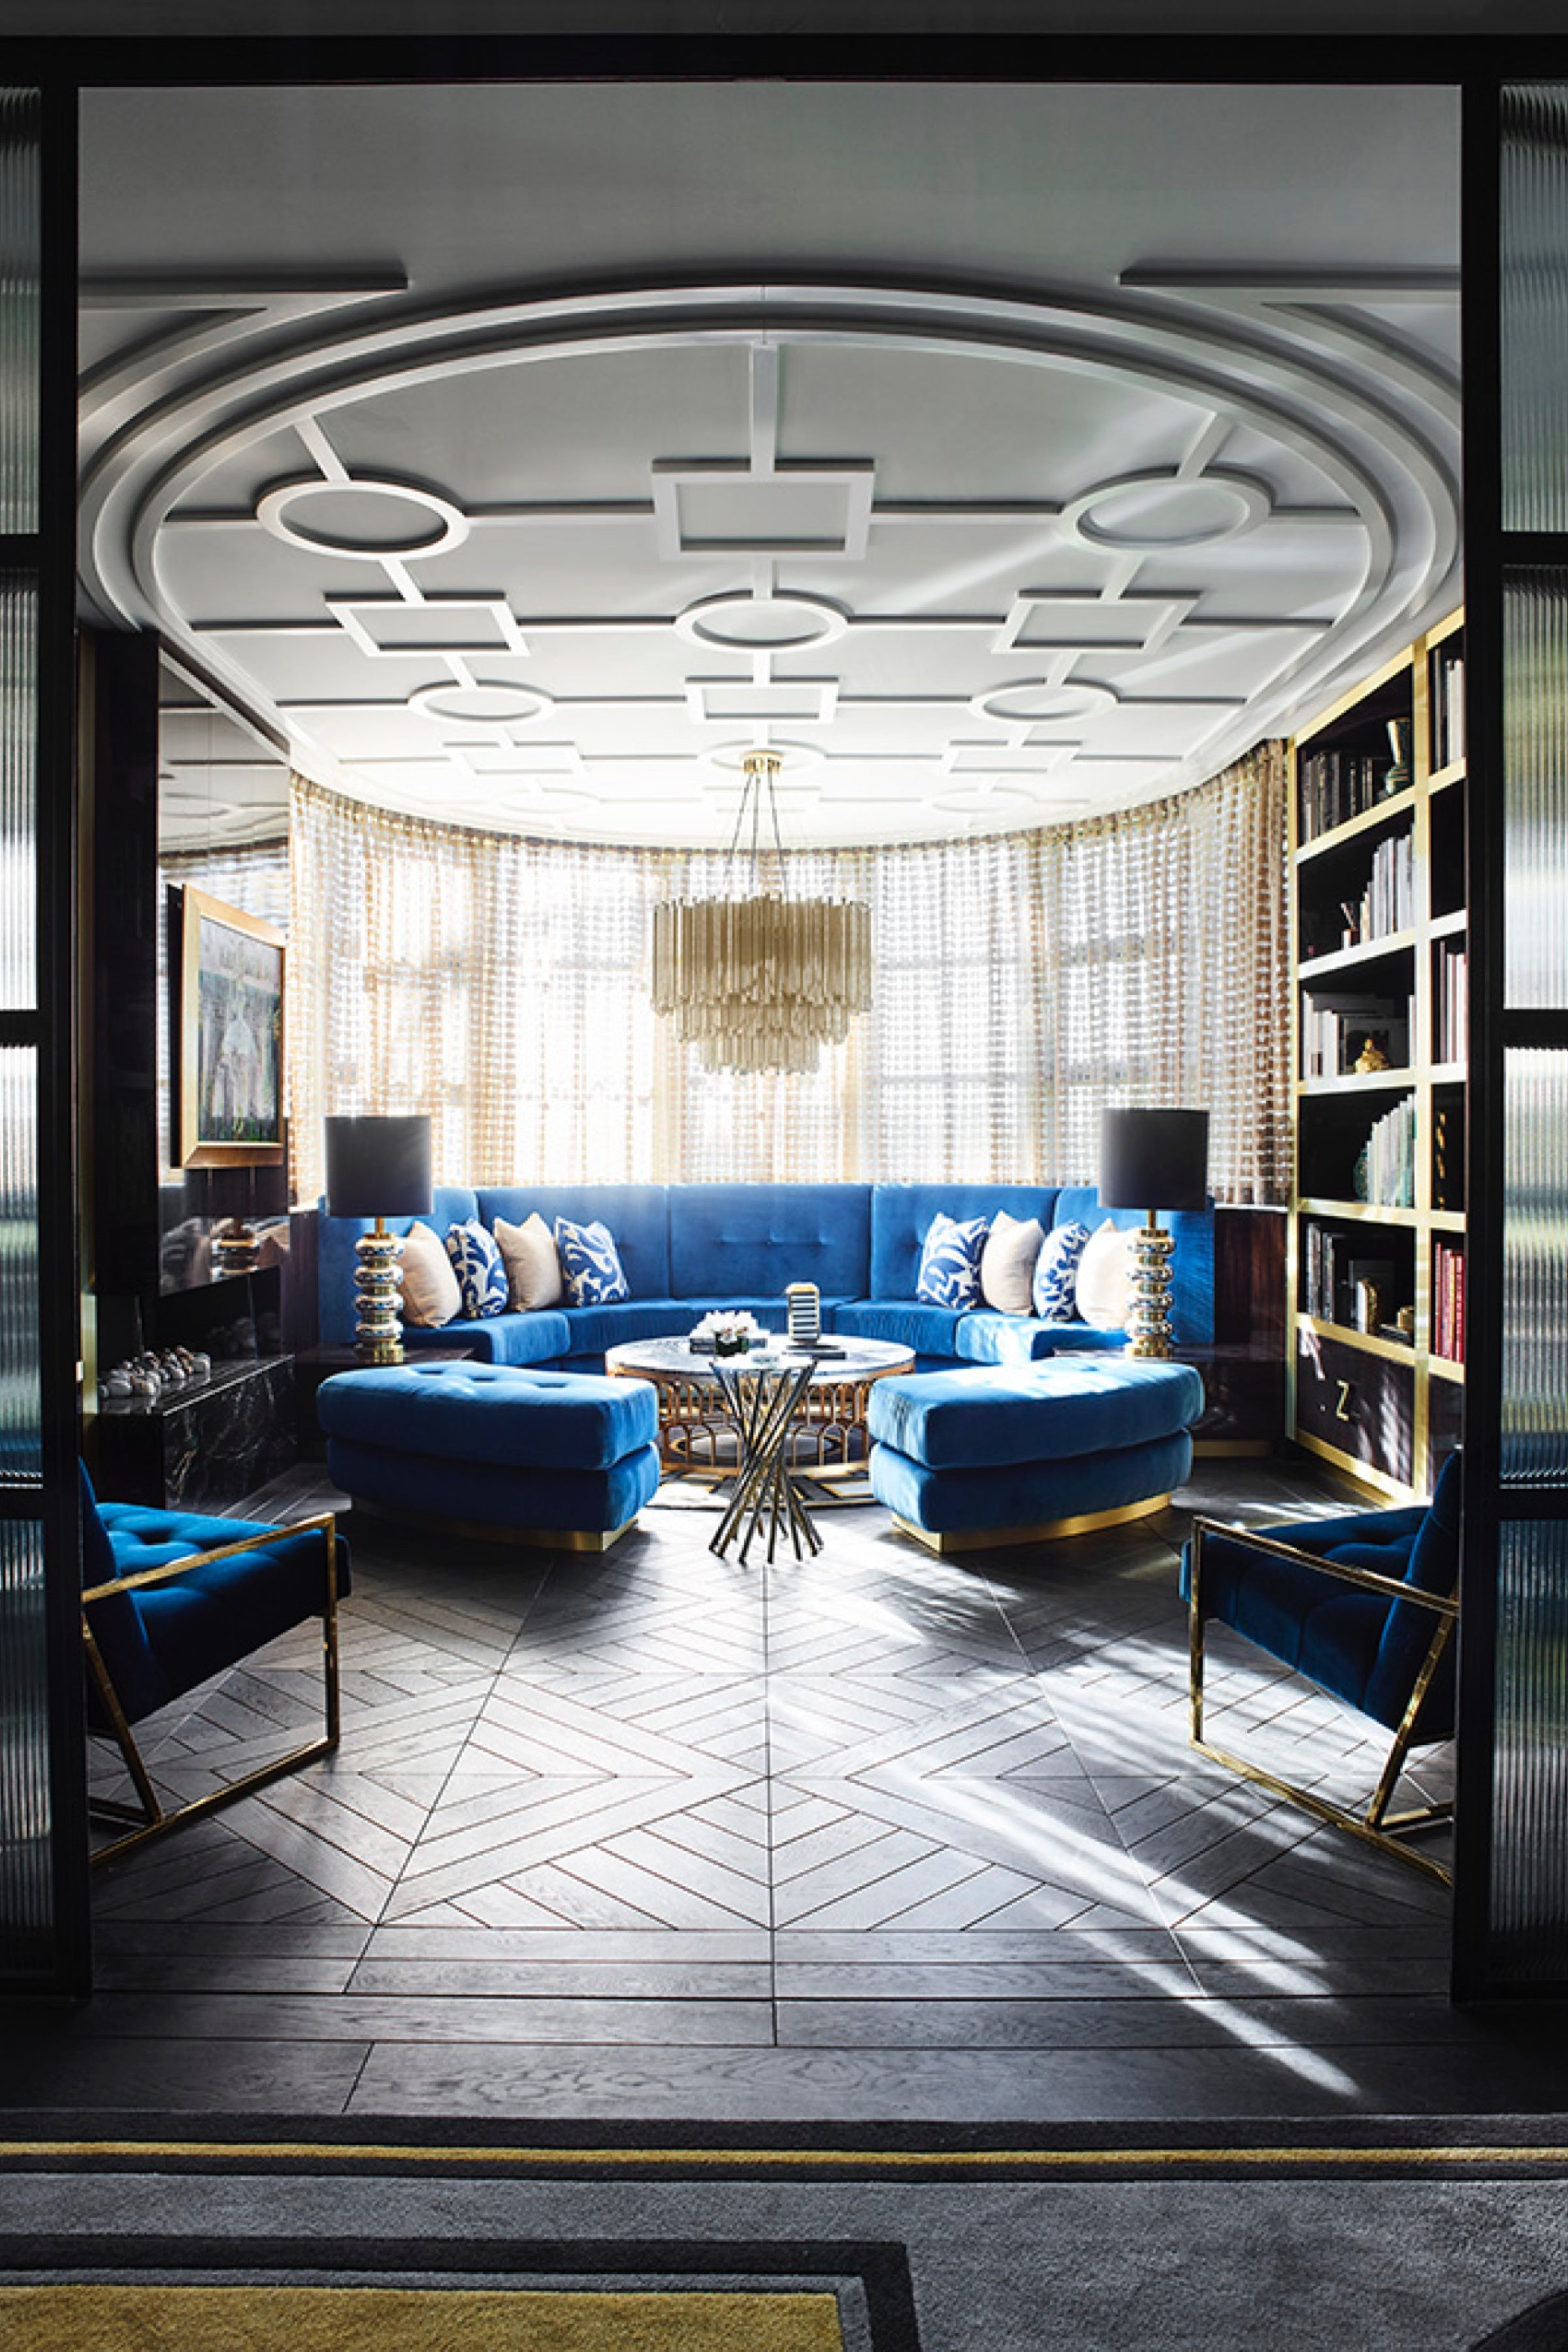 Living room with blue curved sofa and geometric ceiling design